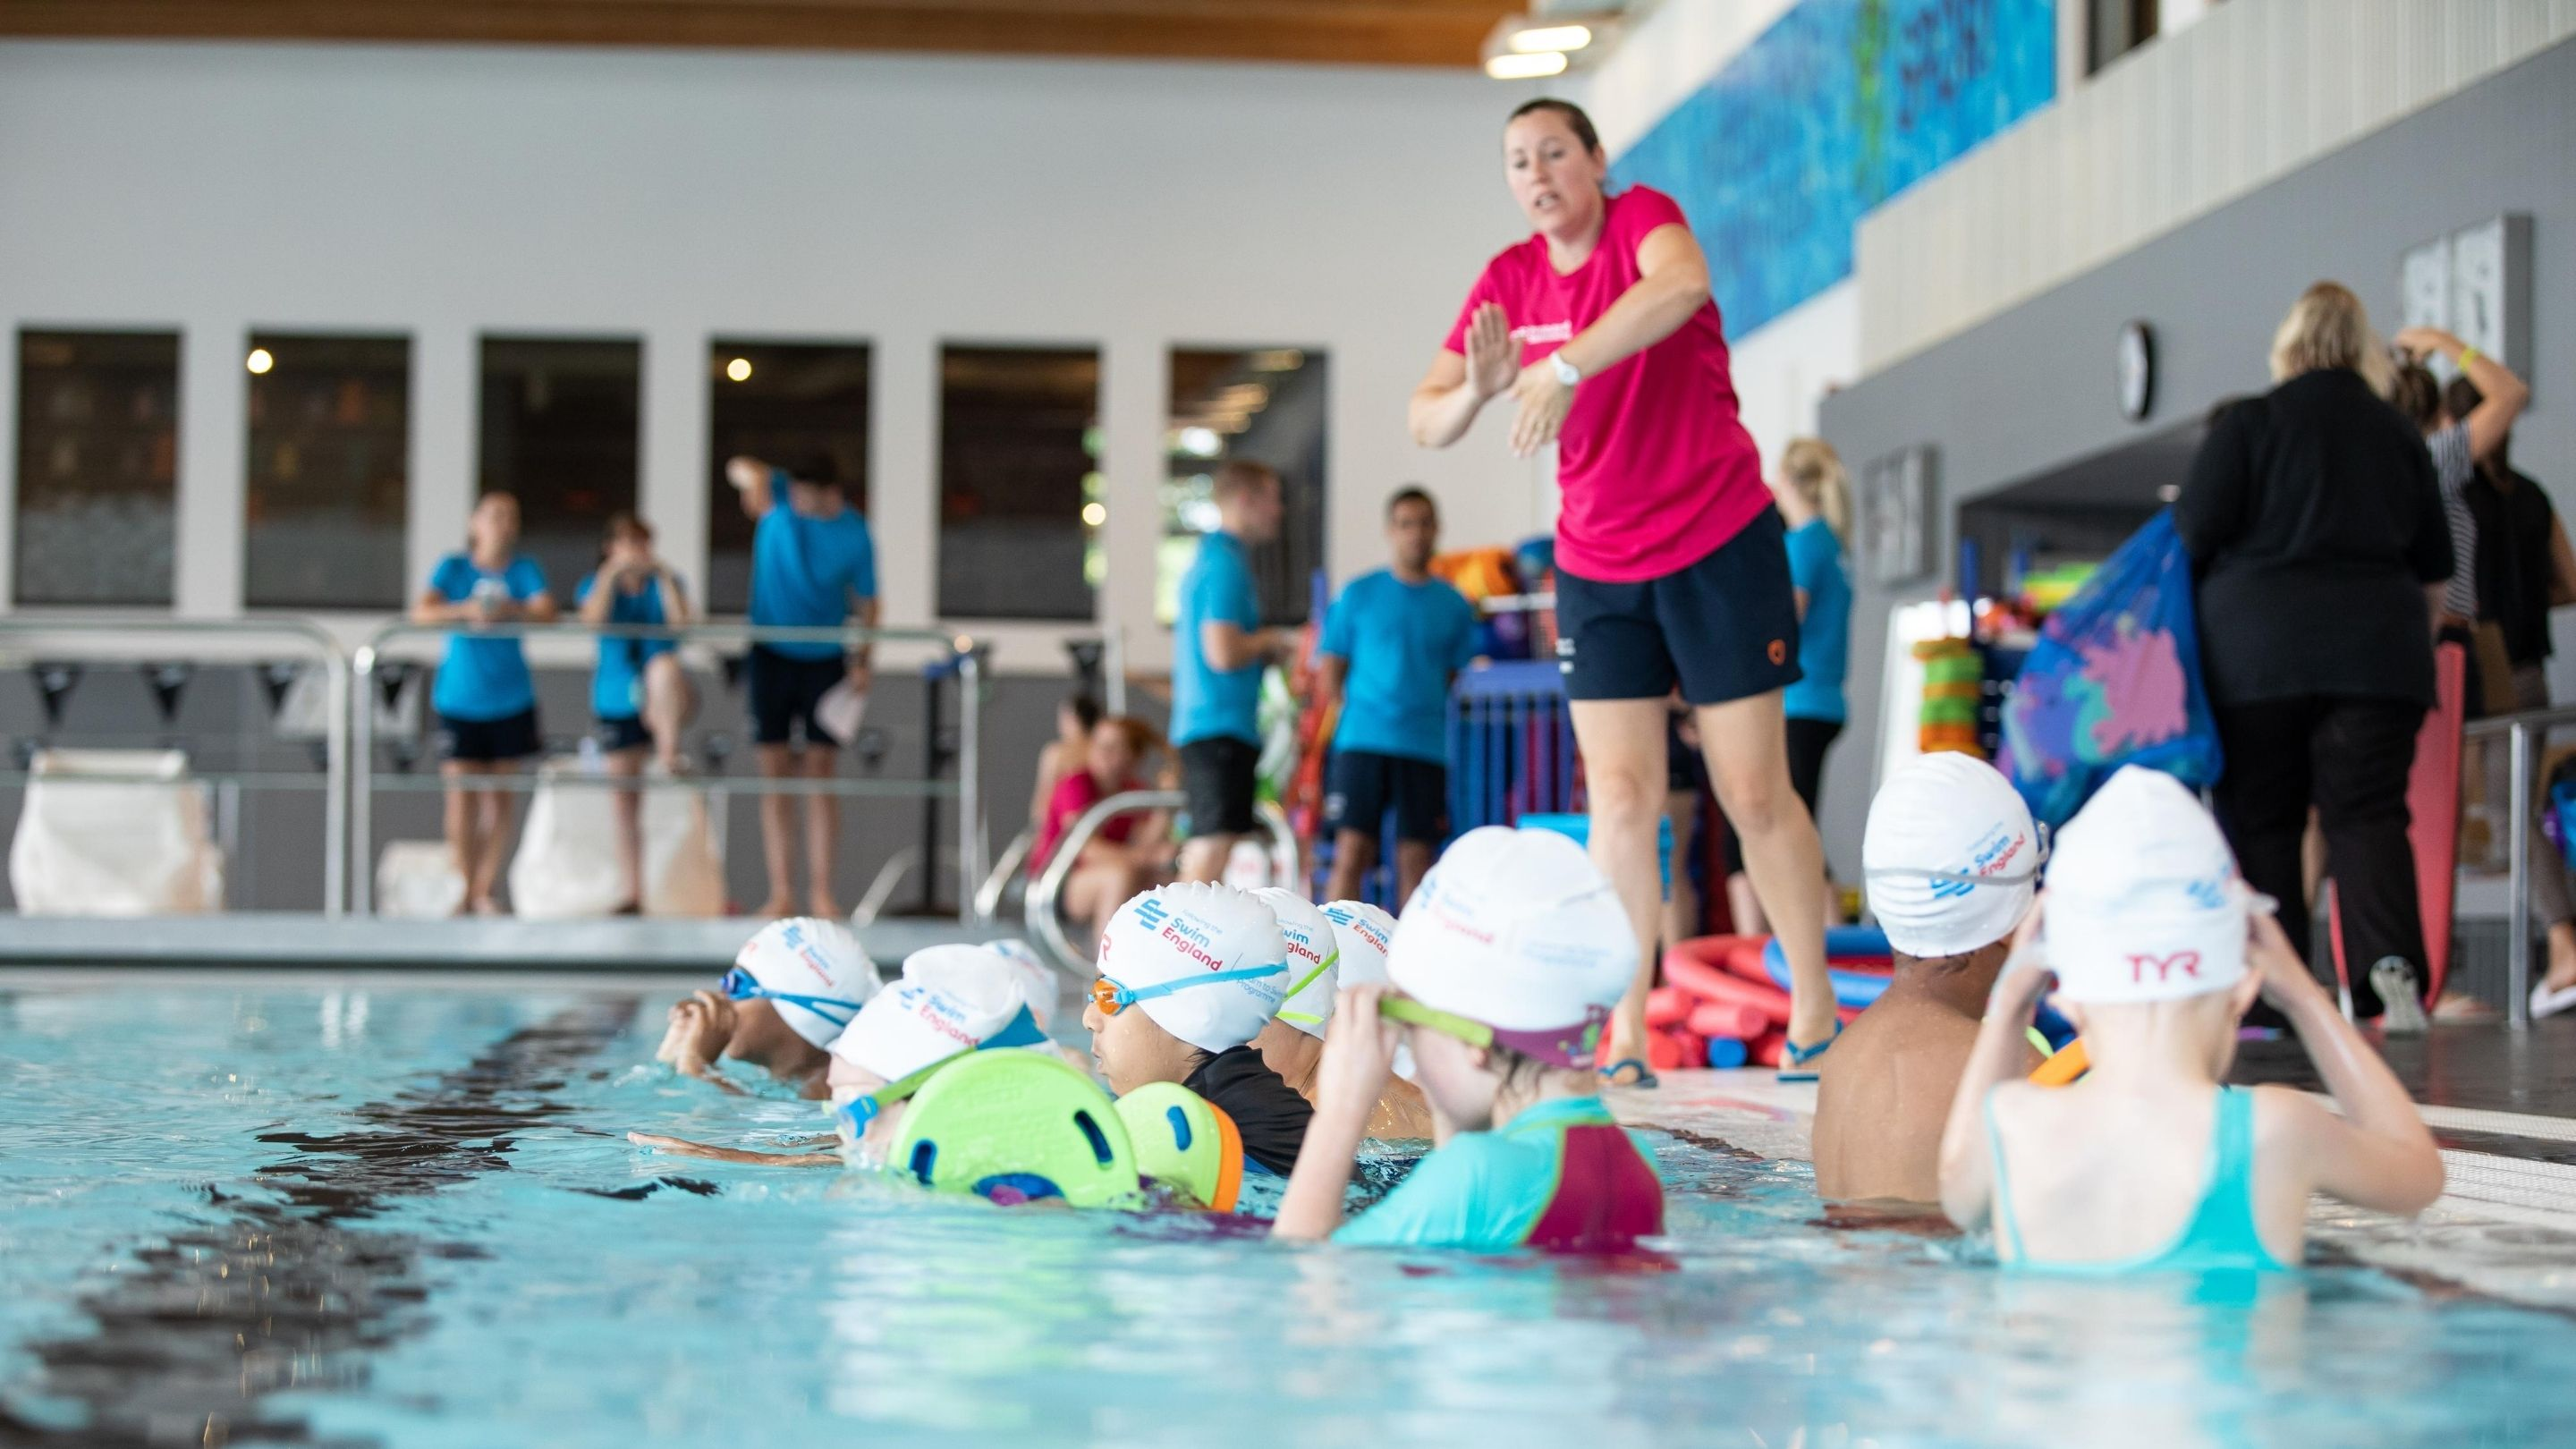 Doncaster Culture and Leisure Trust partners with Institute of Swimming to develop swimming provision